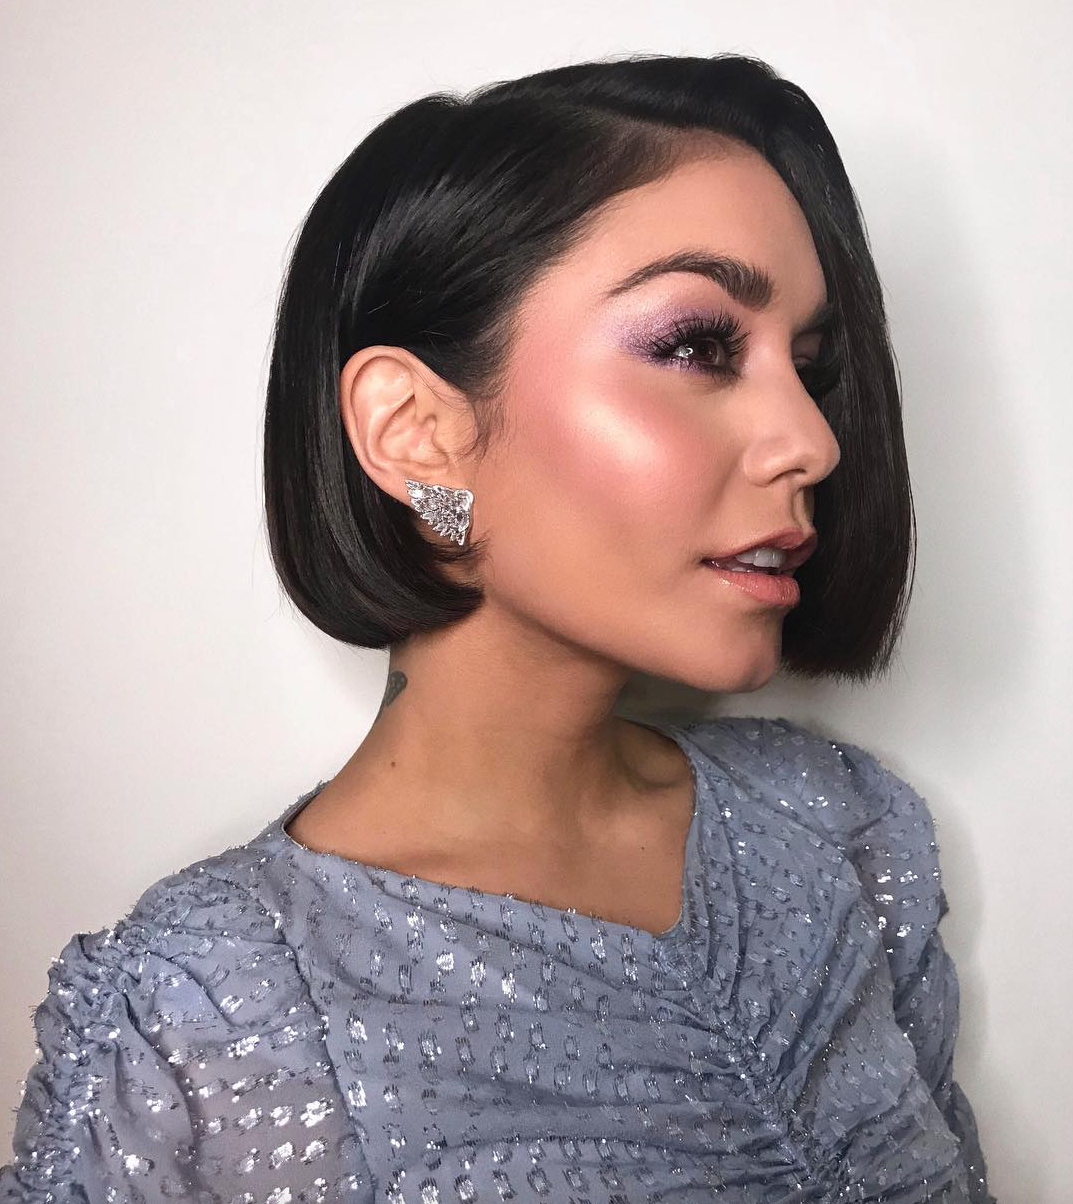 2019 Half Shaved Head Hairstyle Luxury Celeb Short Haircut And With Regard To Half Long Half Short Hairstyles (View 18 of 25)